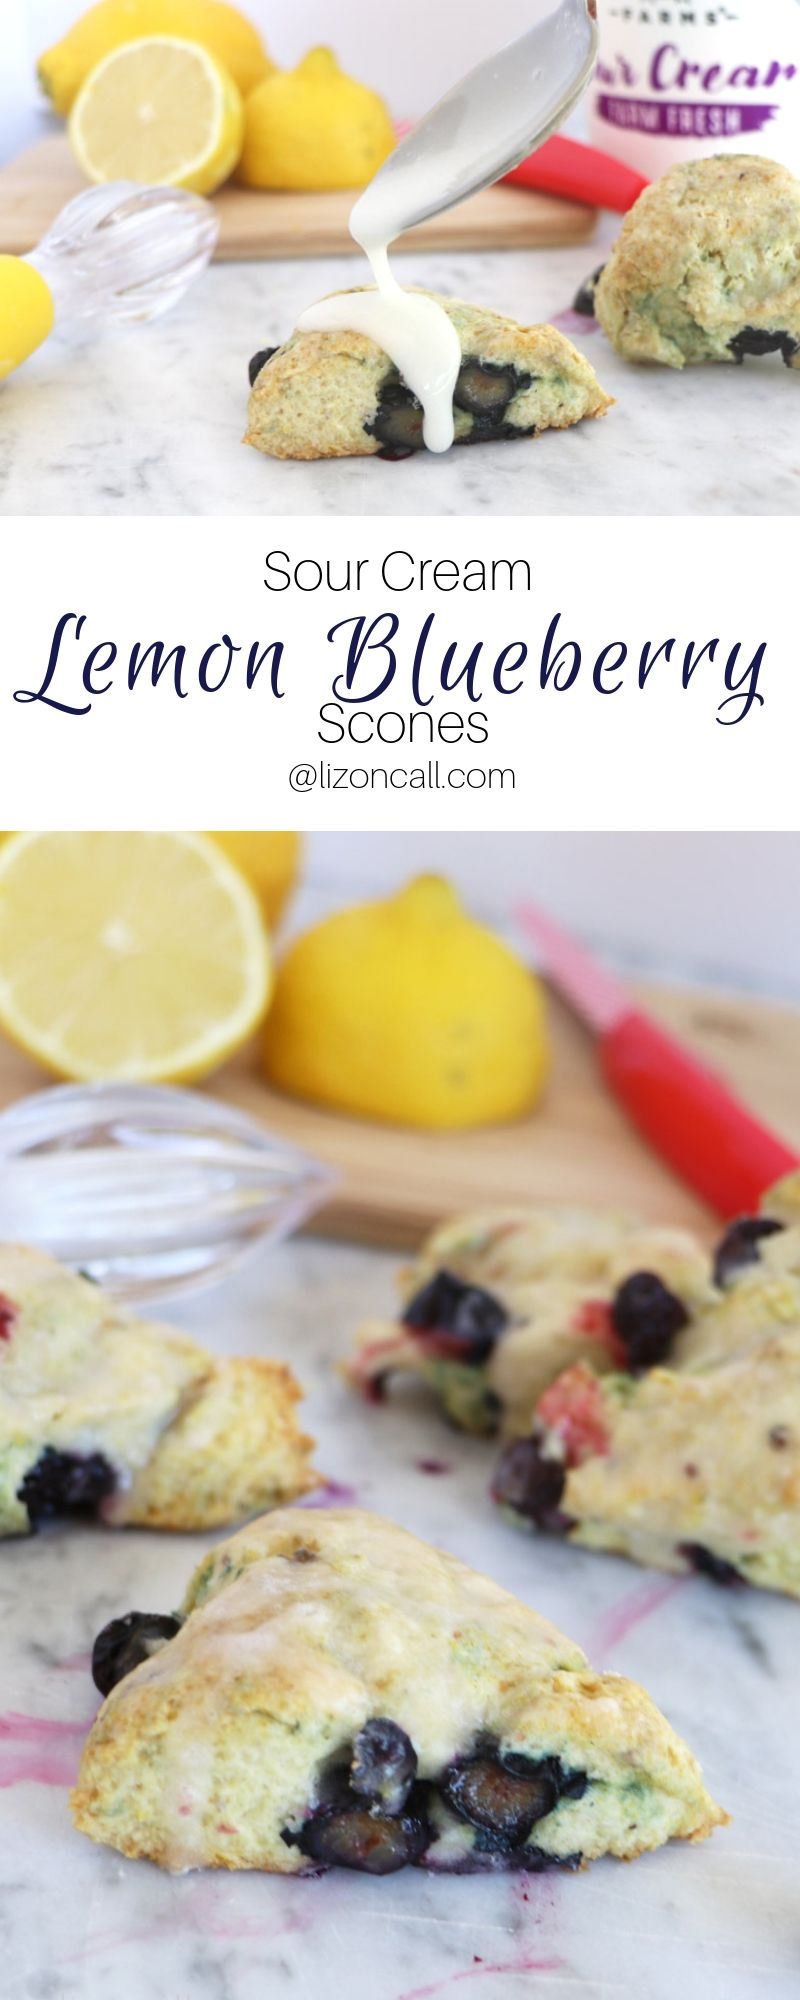 Lemon Blueberry Scones Liz On Call Recipe Blueberry Scones Sour Cream Scones Blueberry Scones Recipe